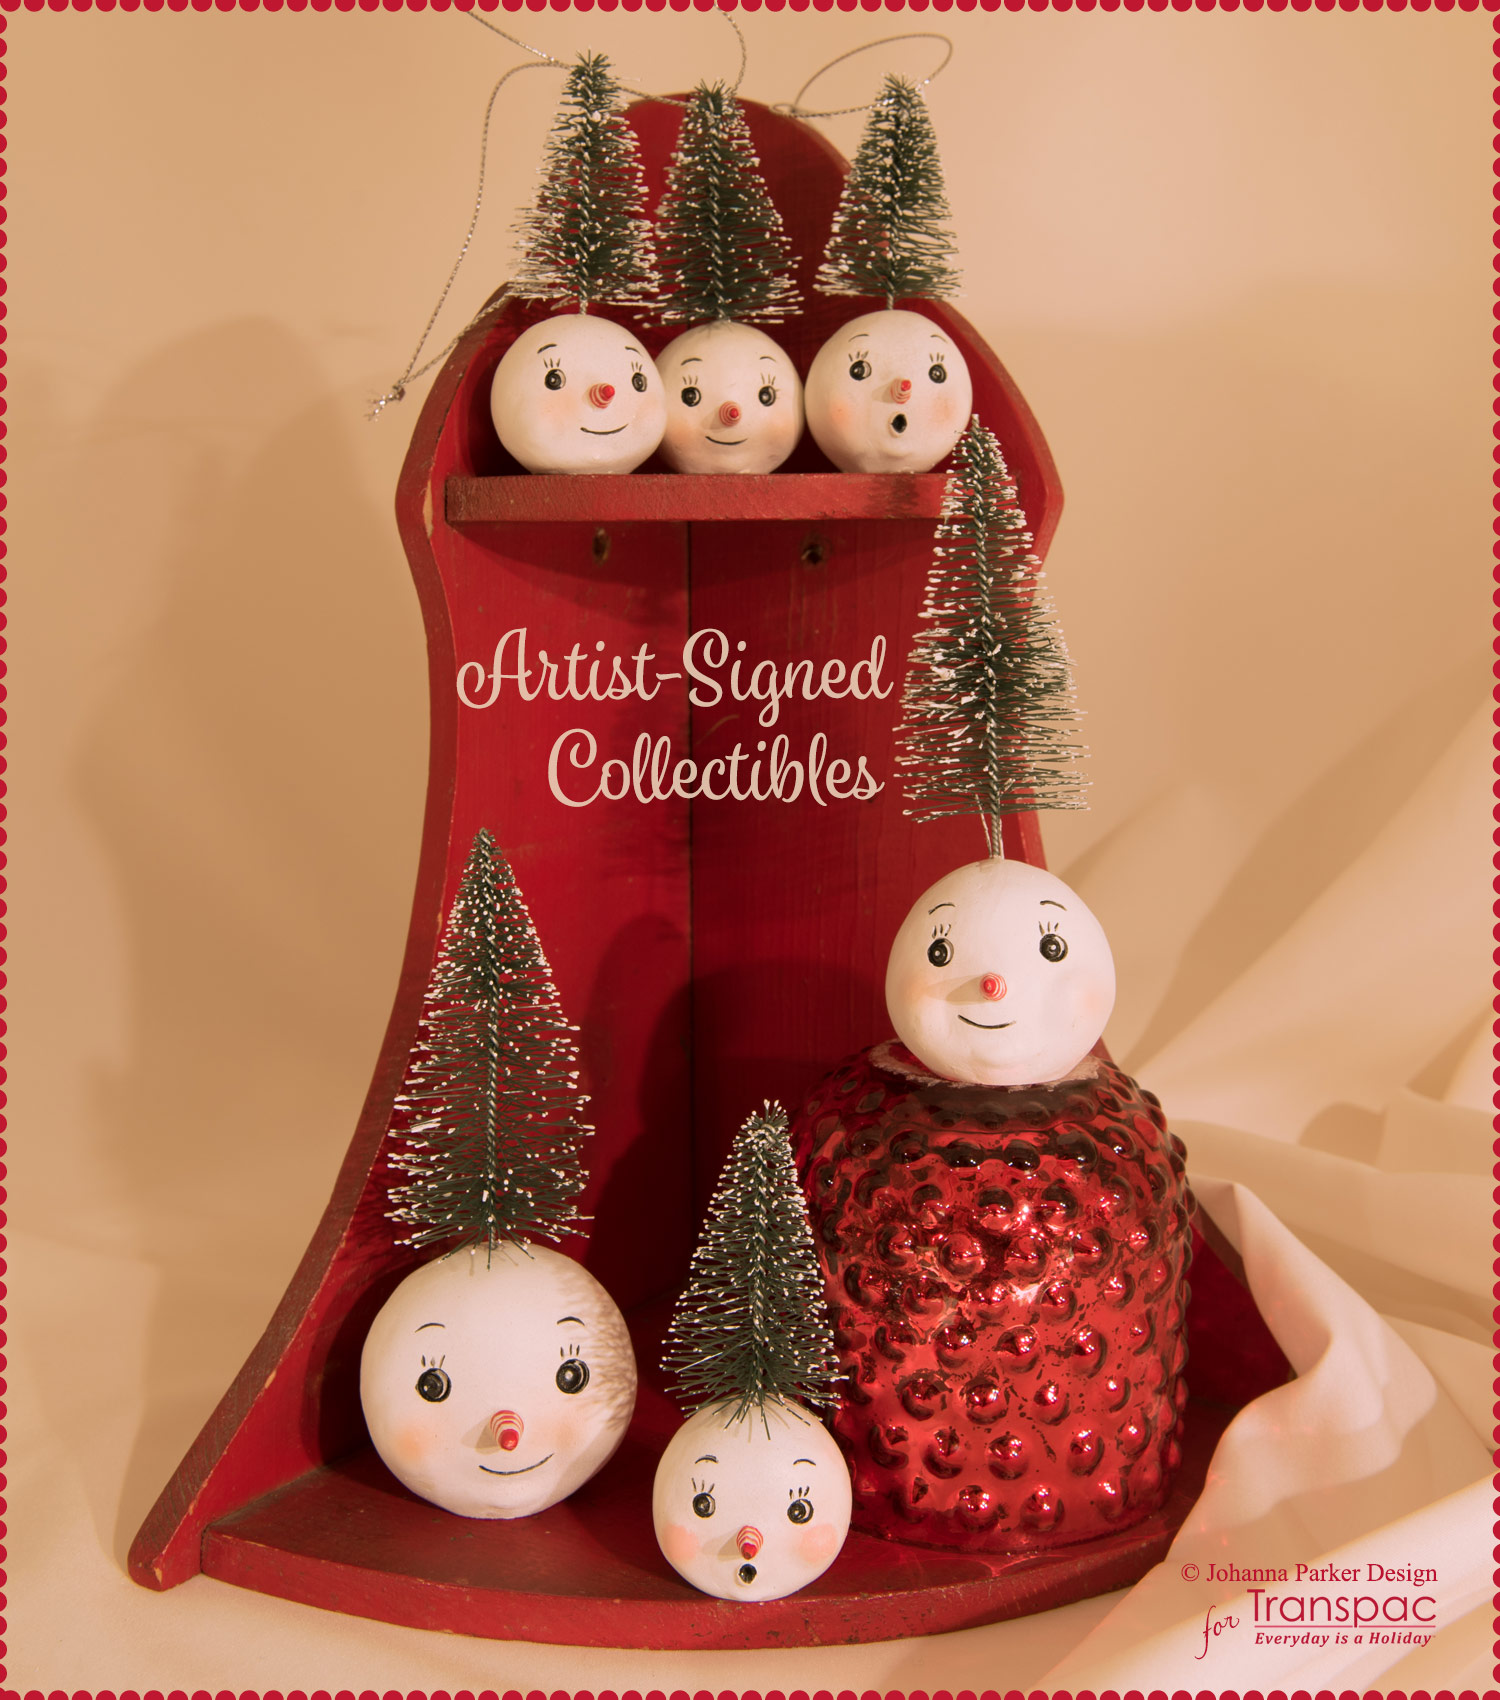 """Let it Snow Set"" - All pieces are from Johanna's new line of Christmas collectibles, manufactured by Transpac Imports. Each is hand-painted and may have slight imperfections due to the nature of the material and molding process. Each Collectible is Signed."